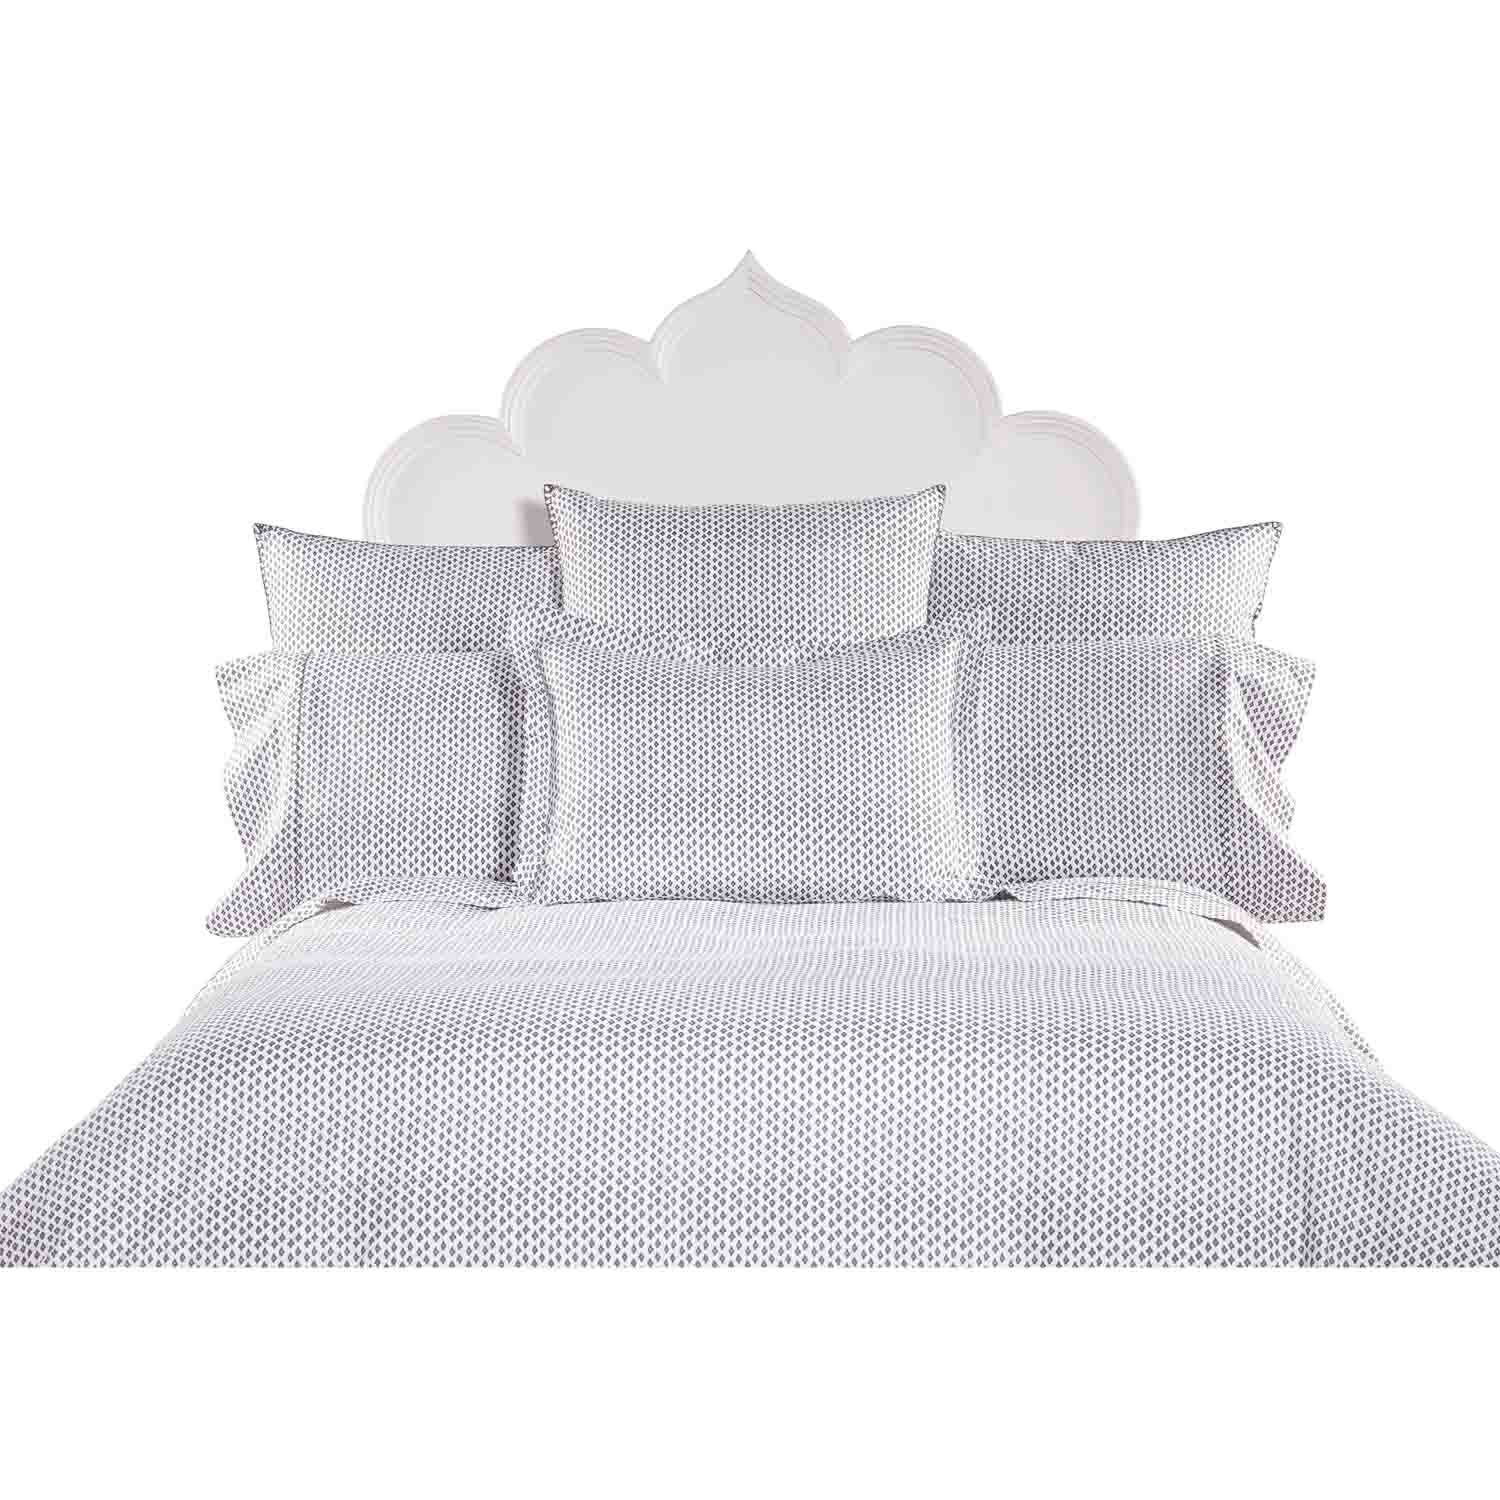 round duvets white size insert feather comforter sale queen the hungarian alternative reviews big real duvet bedroom black world light alluring yellow in stuffed best european down goose twin comforters for year fluffy king